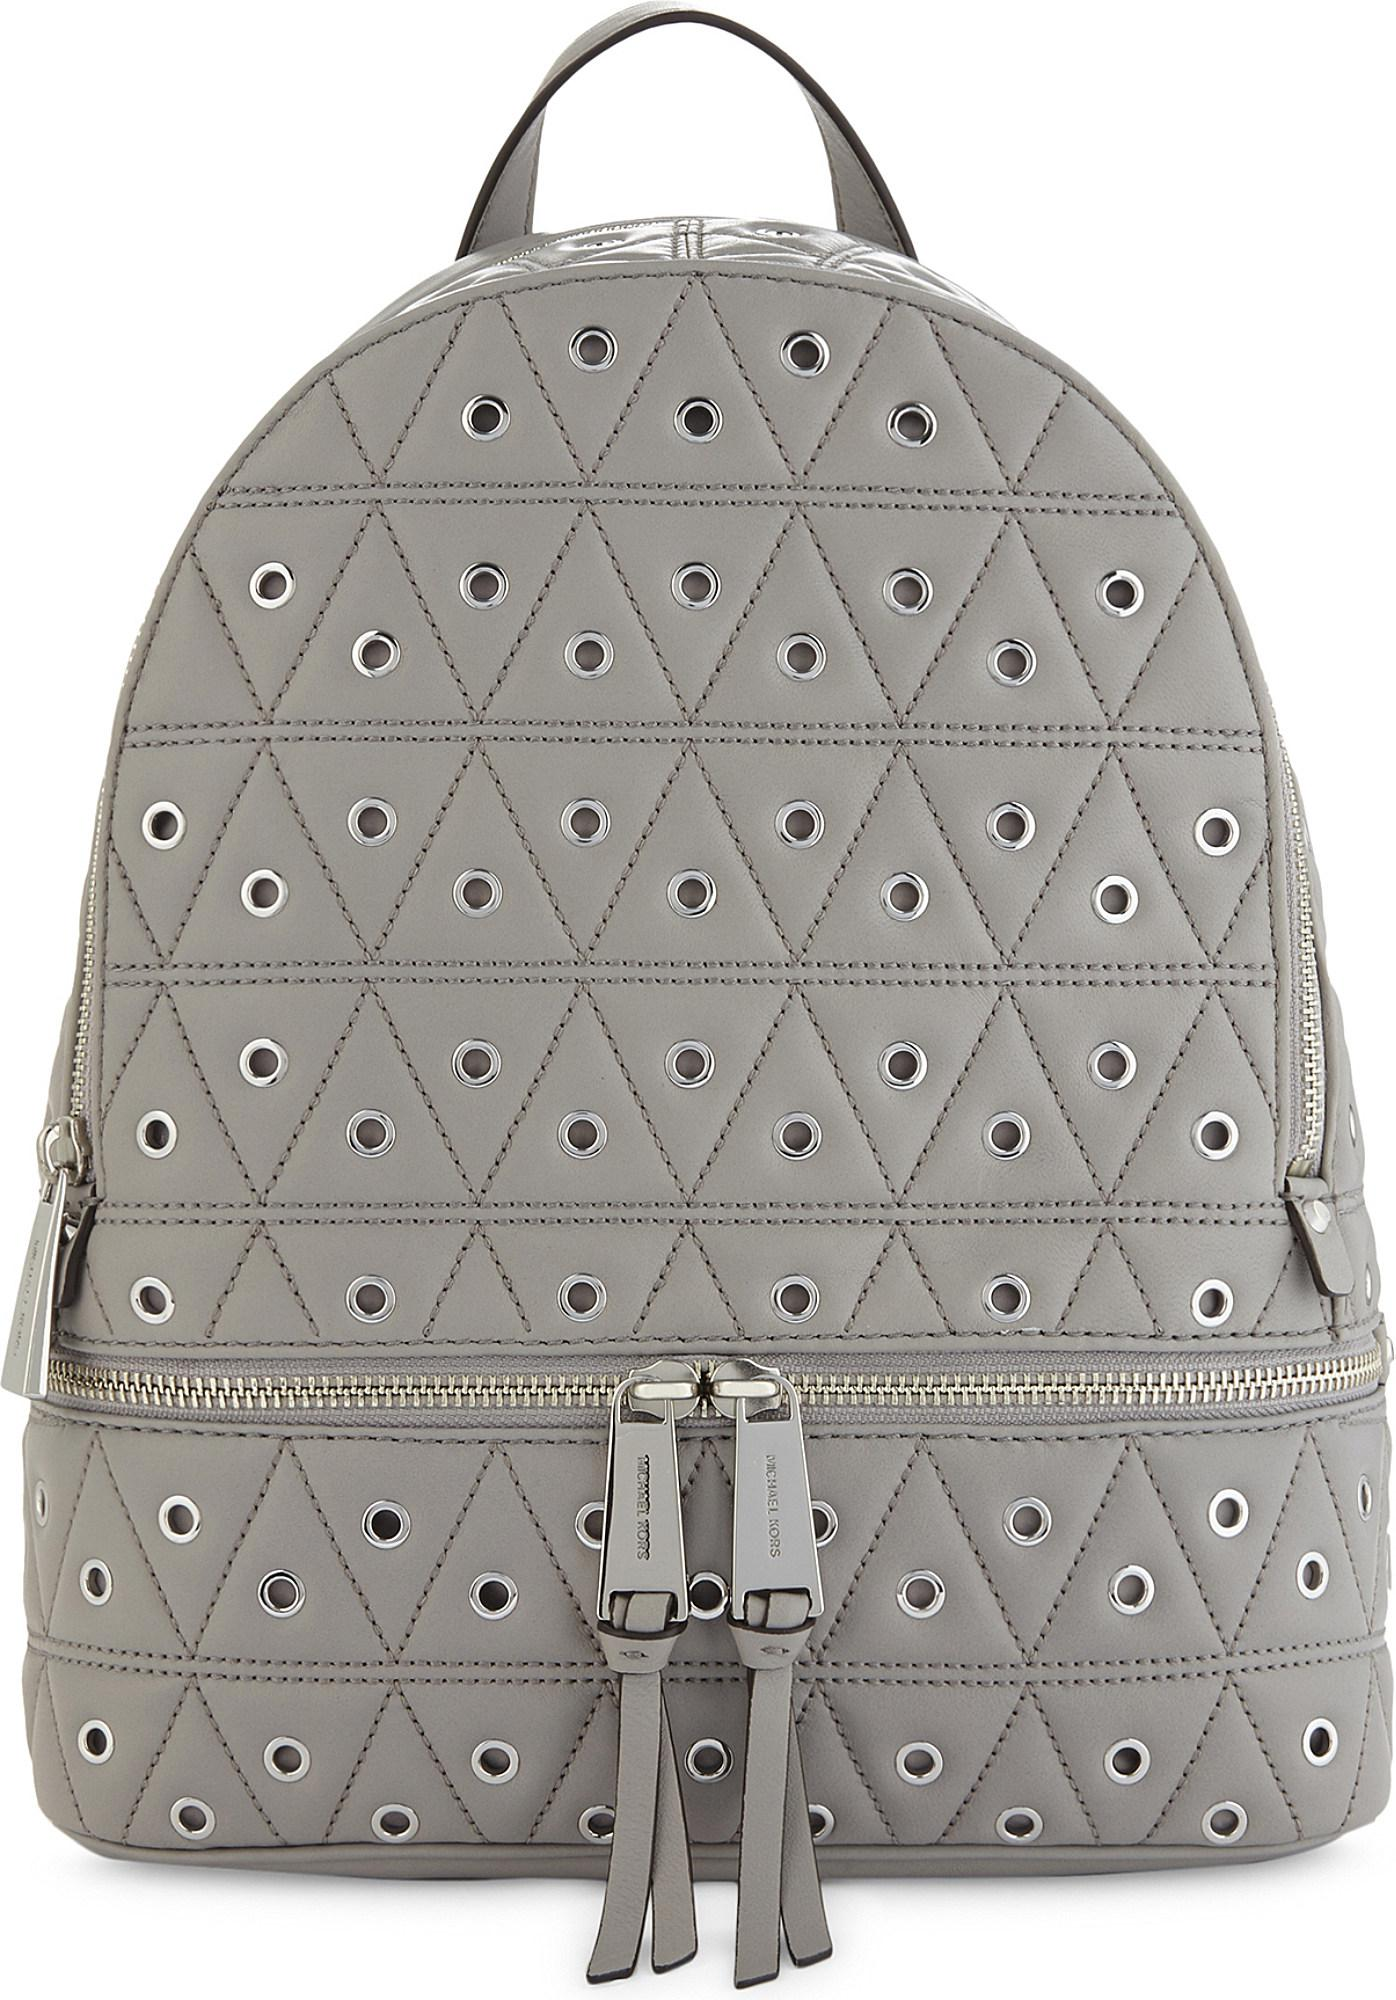 322a193fd9d4f Lyst - MICHAEL Michael Kors Rhea Quilted Grommeted Leather Backpack ...